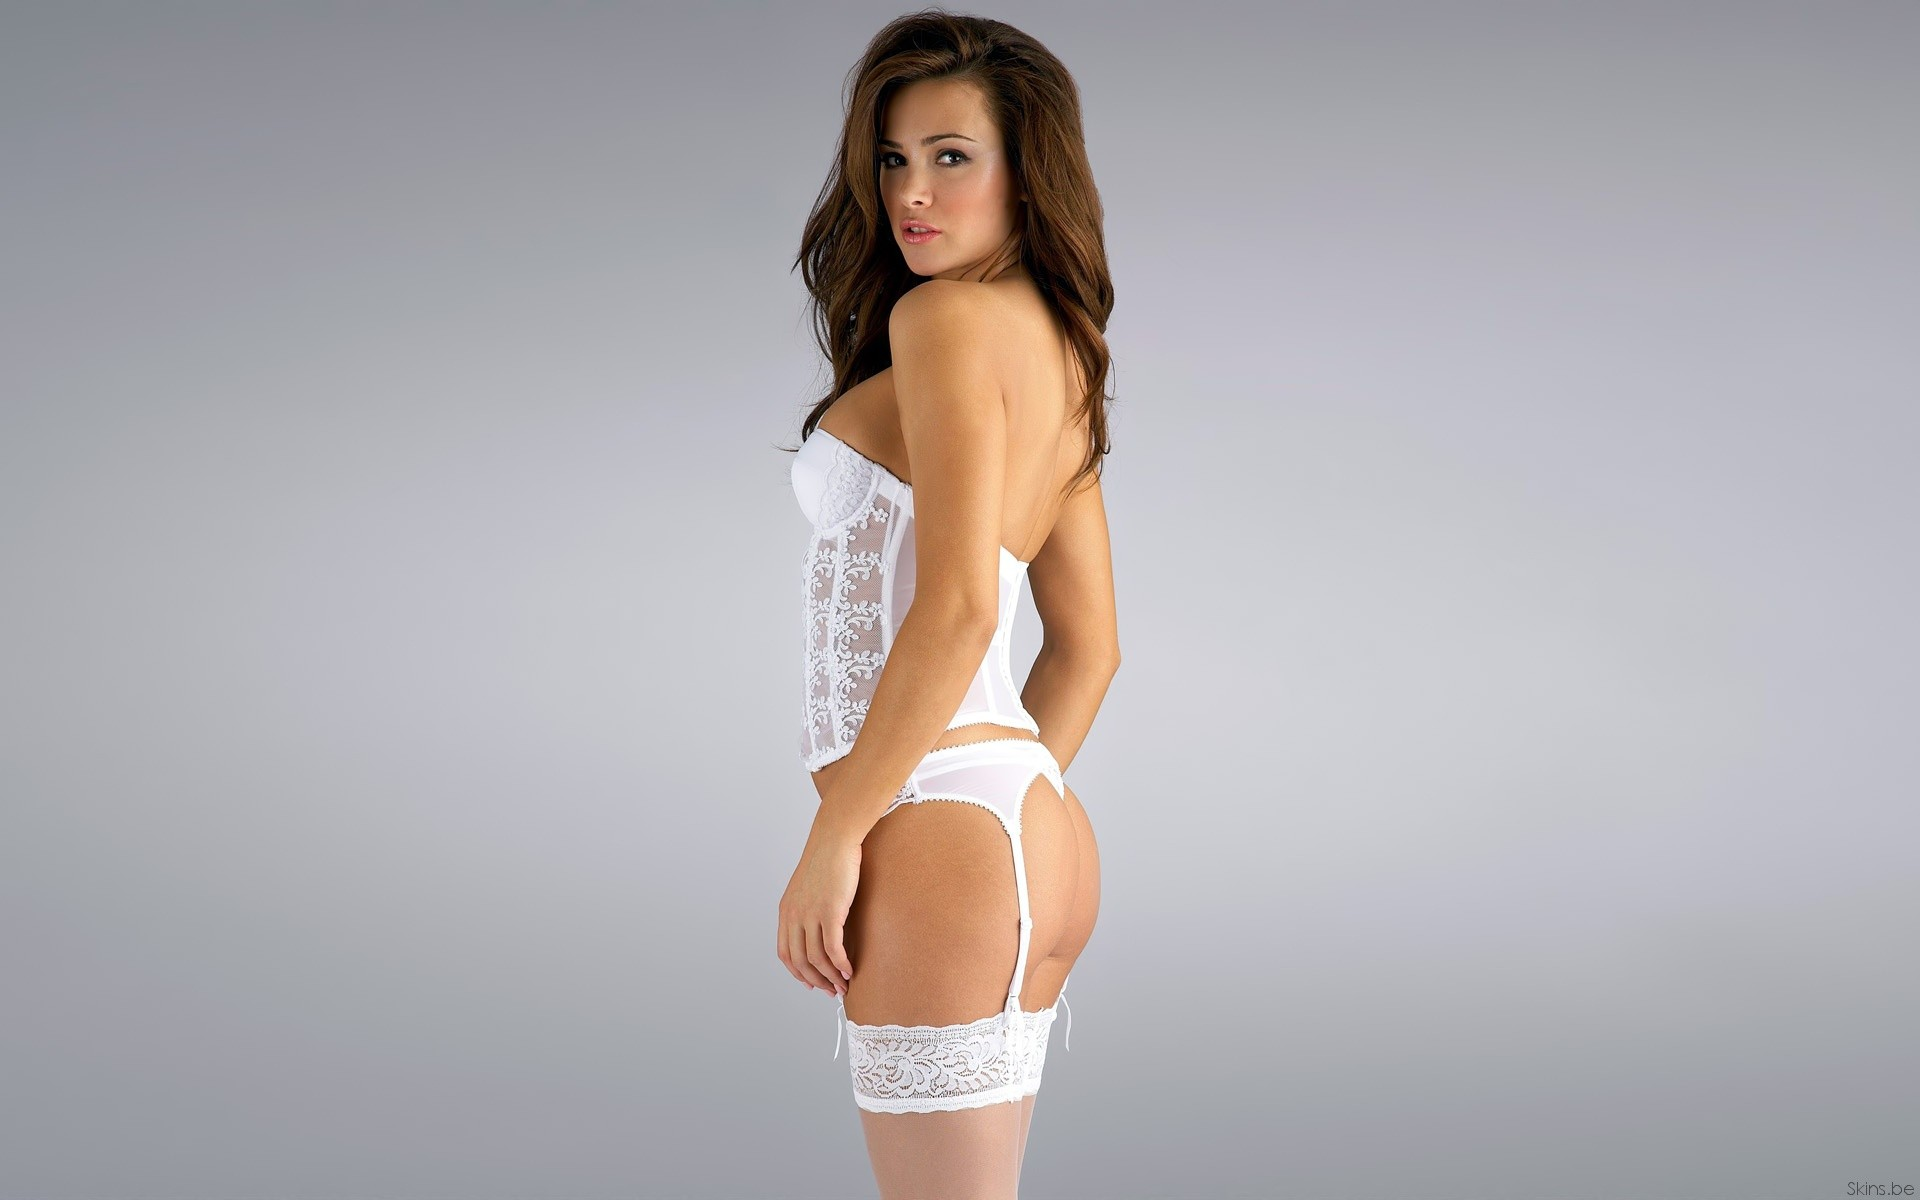 brunettes woman ass models HD Wallpaper